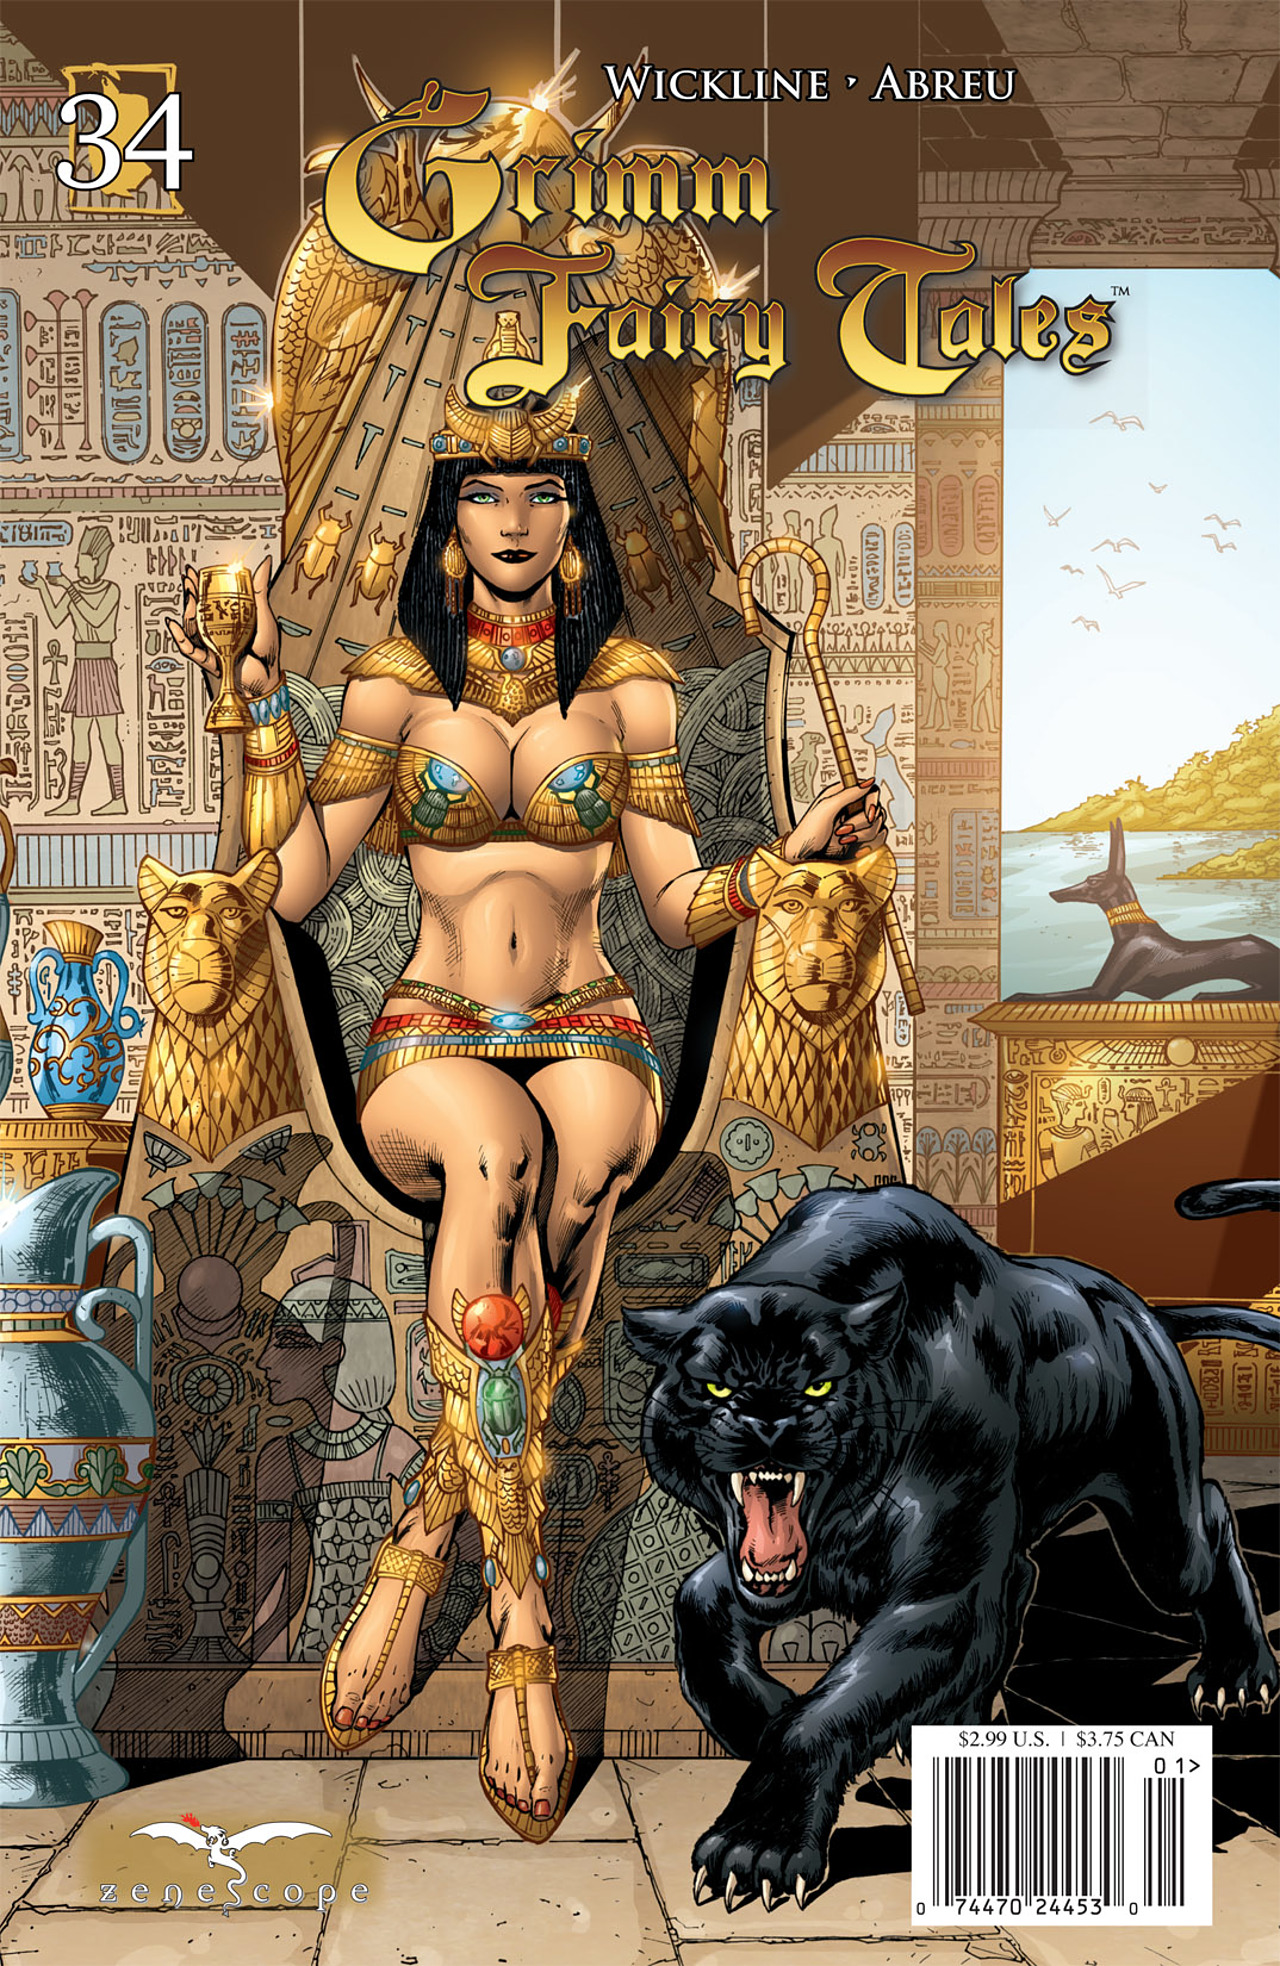 Grimm Fairy Tales (2005) Issue #34 #37 - English 1